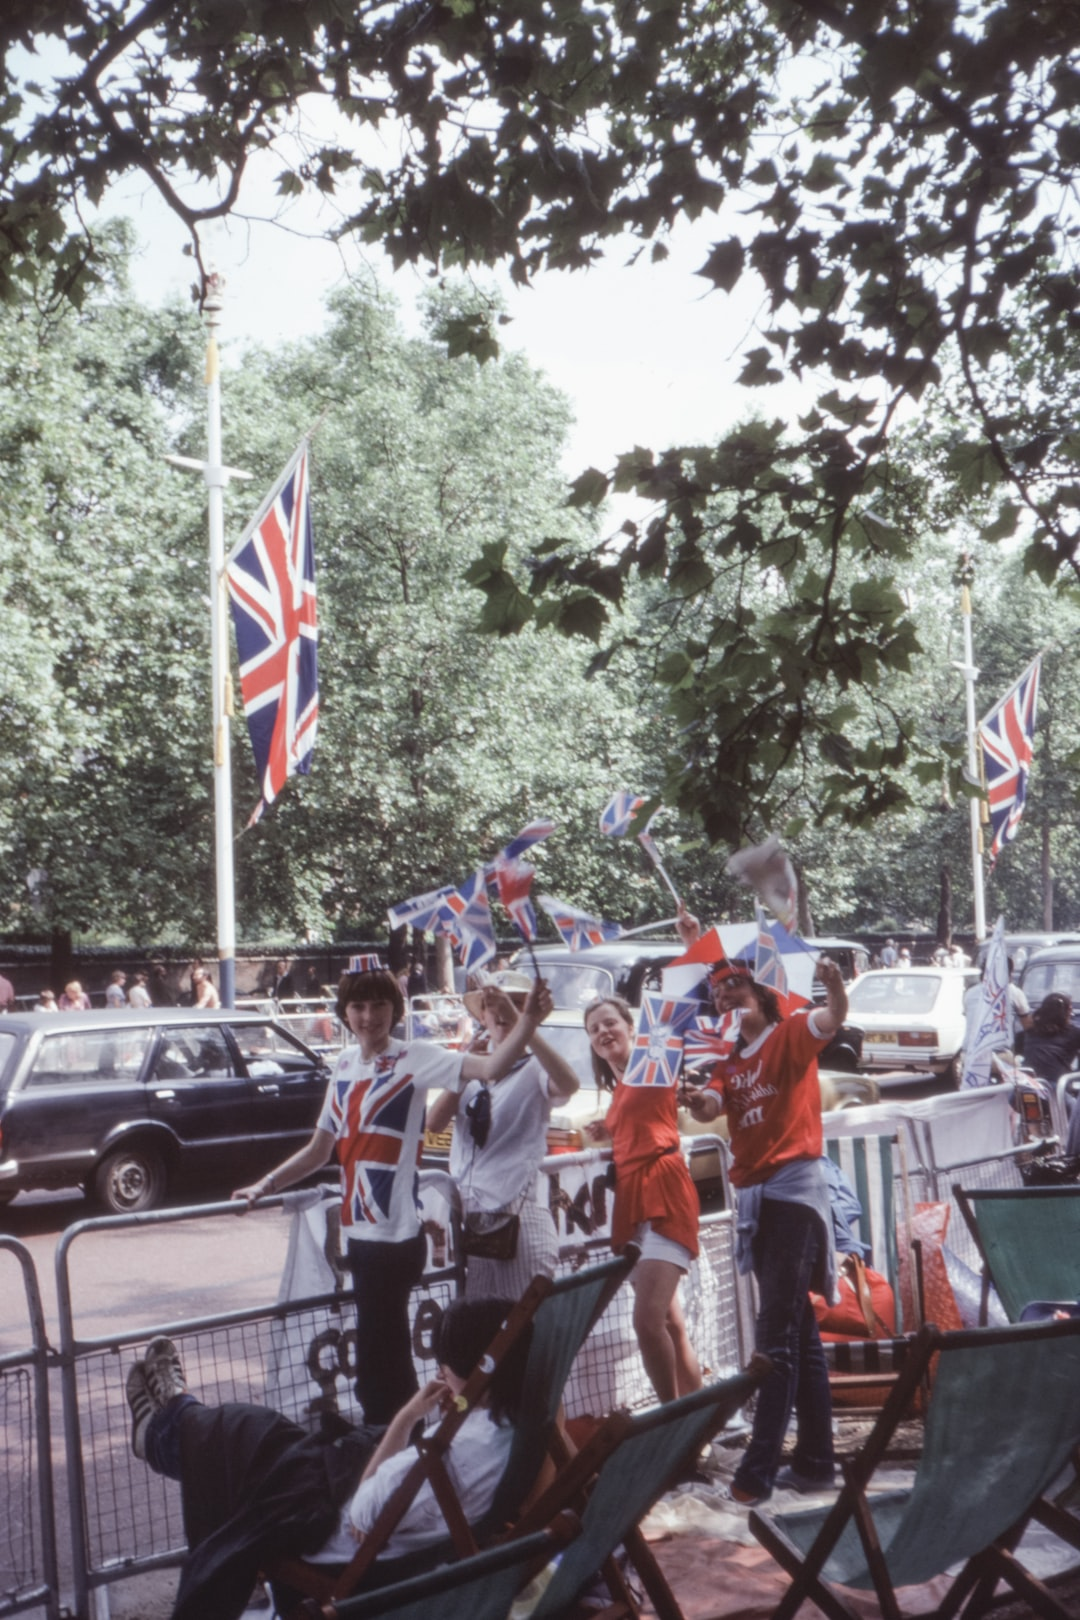 Young people waving British flags waiting for the wedding procession to celebrate the Marriage of Prince Charles and Princess Diana, 1981. 1980s 35mm film slide photo